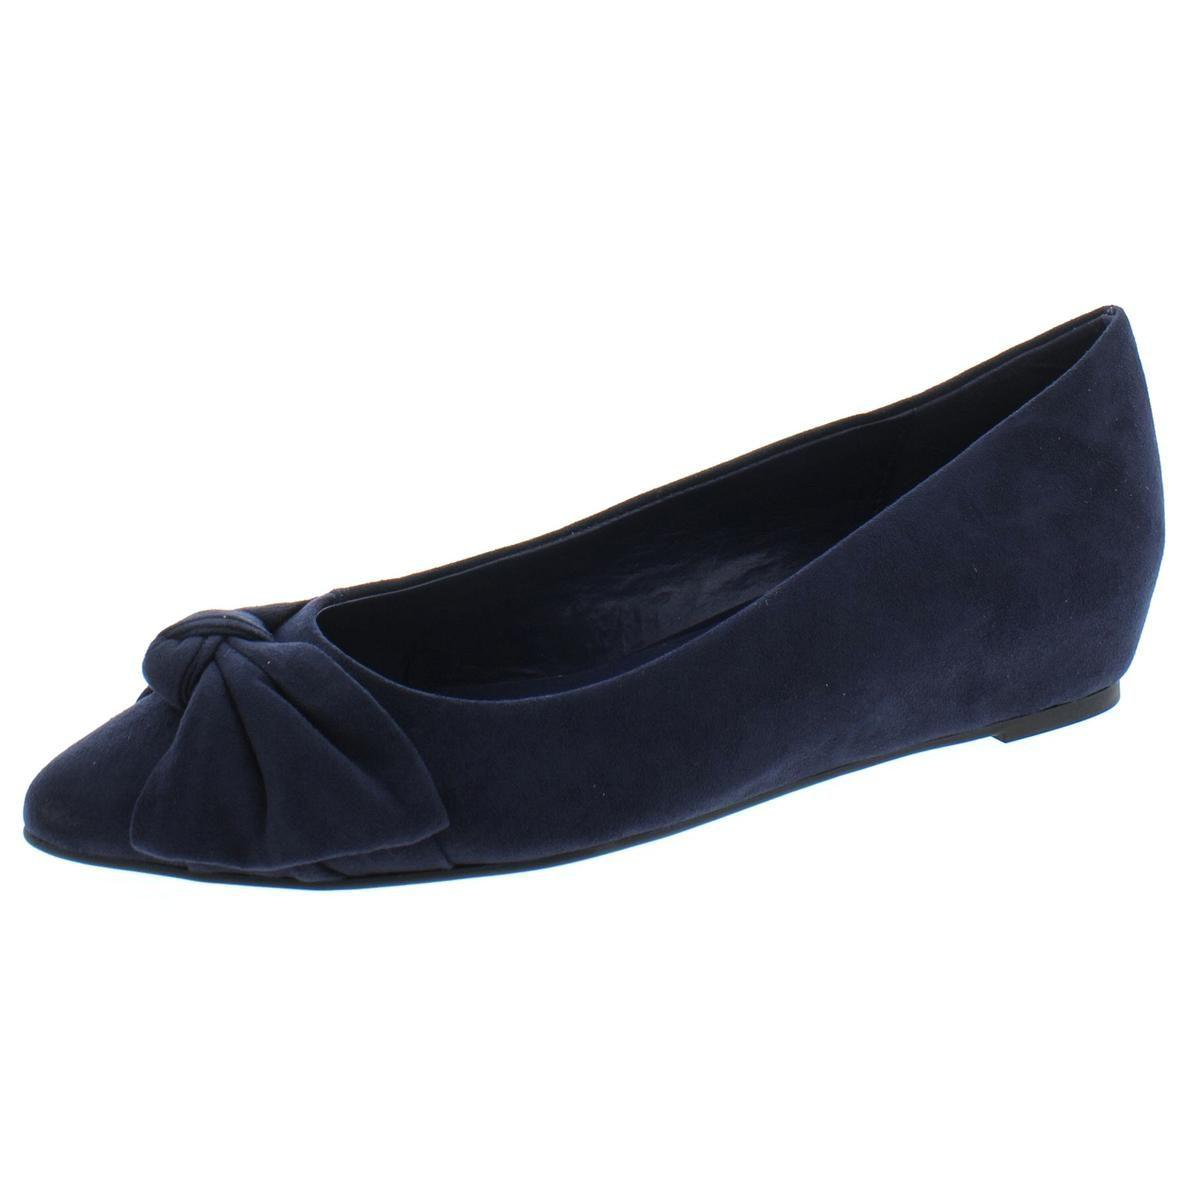 805d18e72f7 Lyst - Bandolino Womens Ressie Faux Suede Bow Wedge Heels in Blue